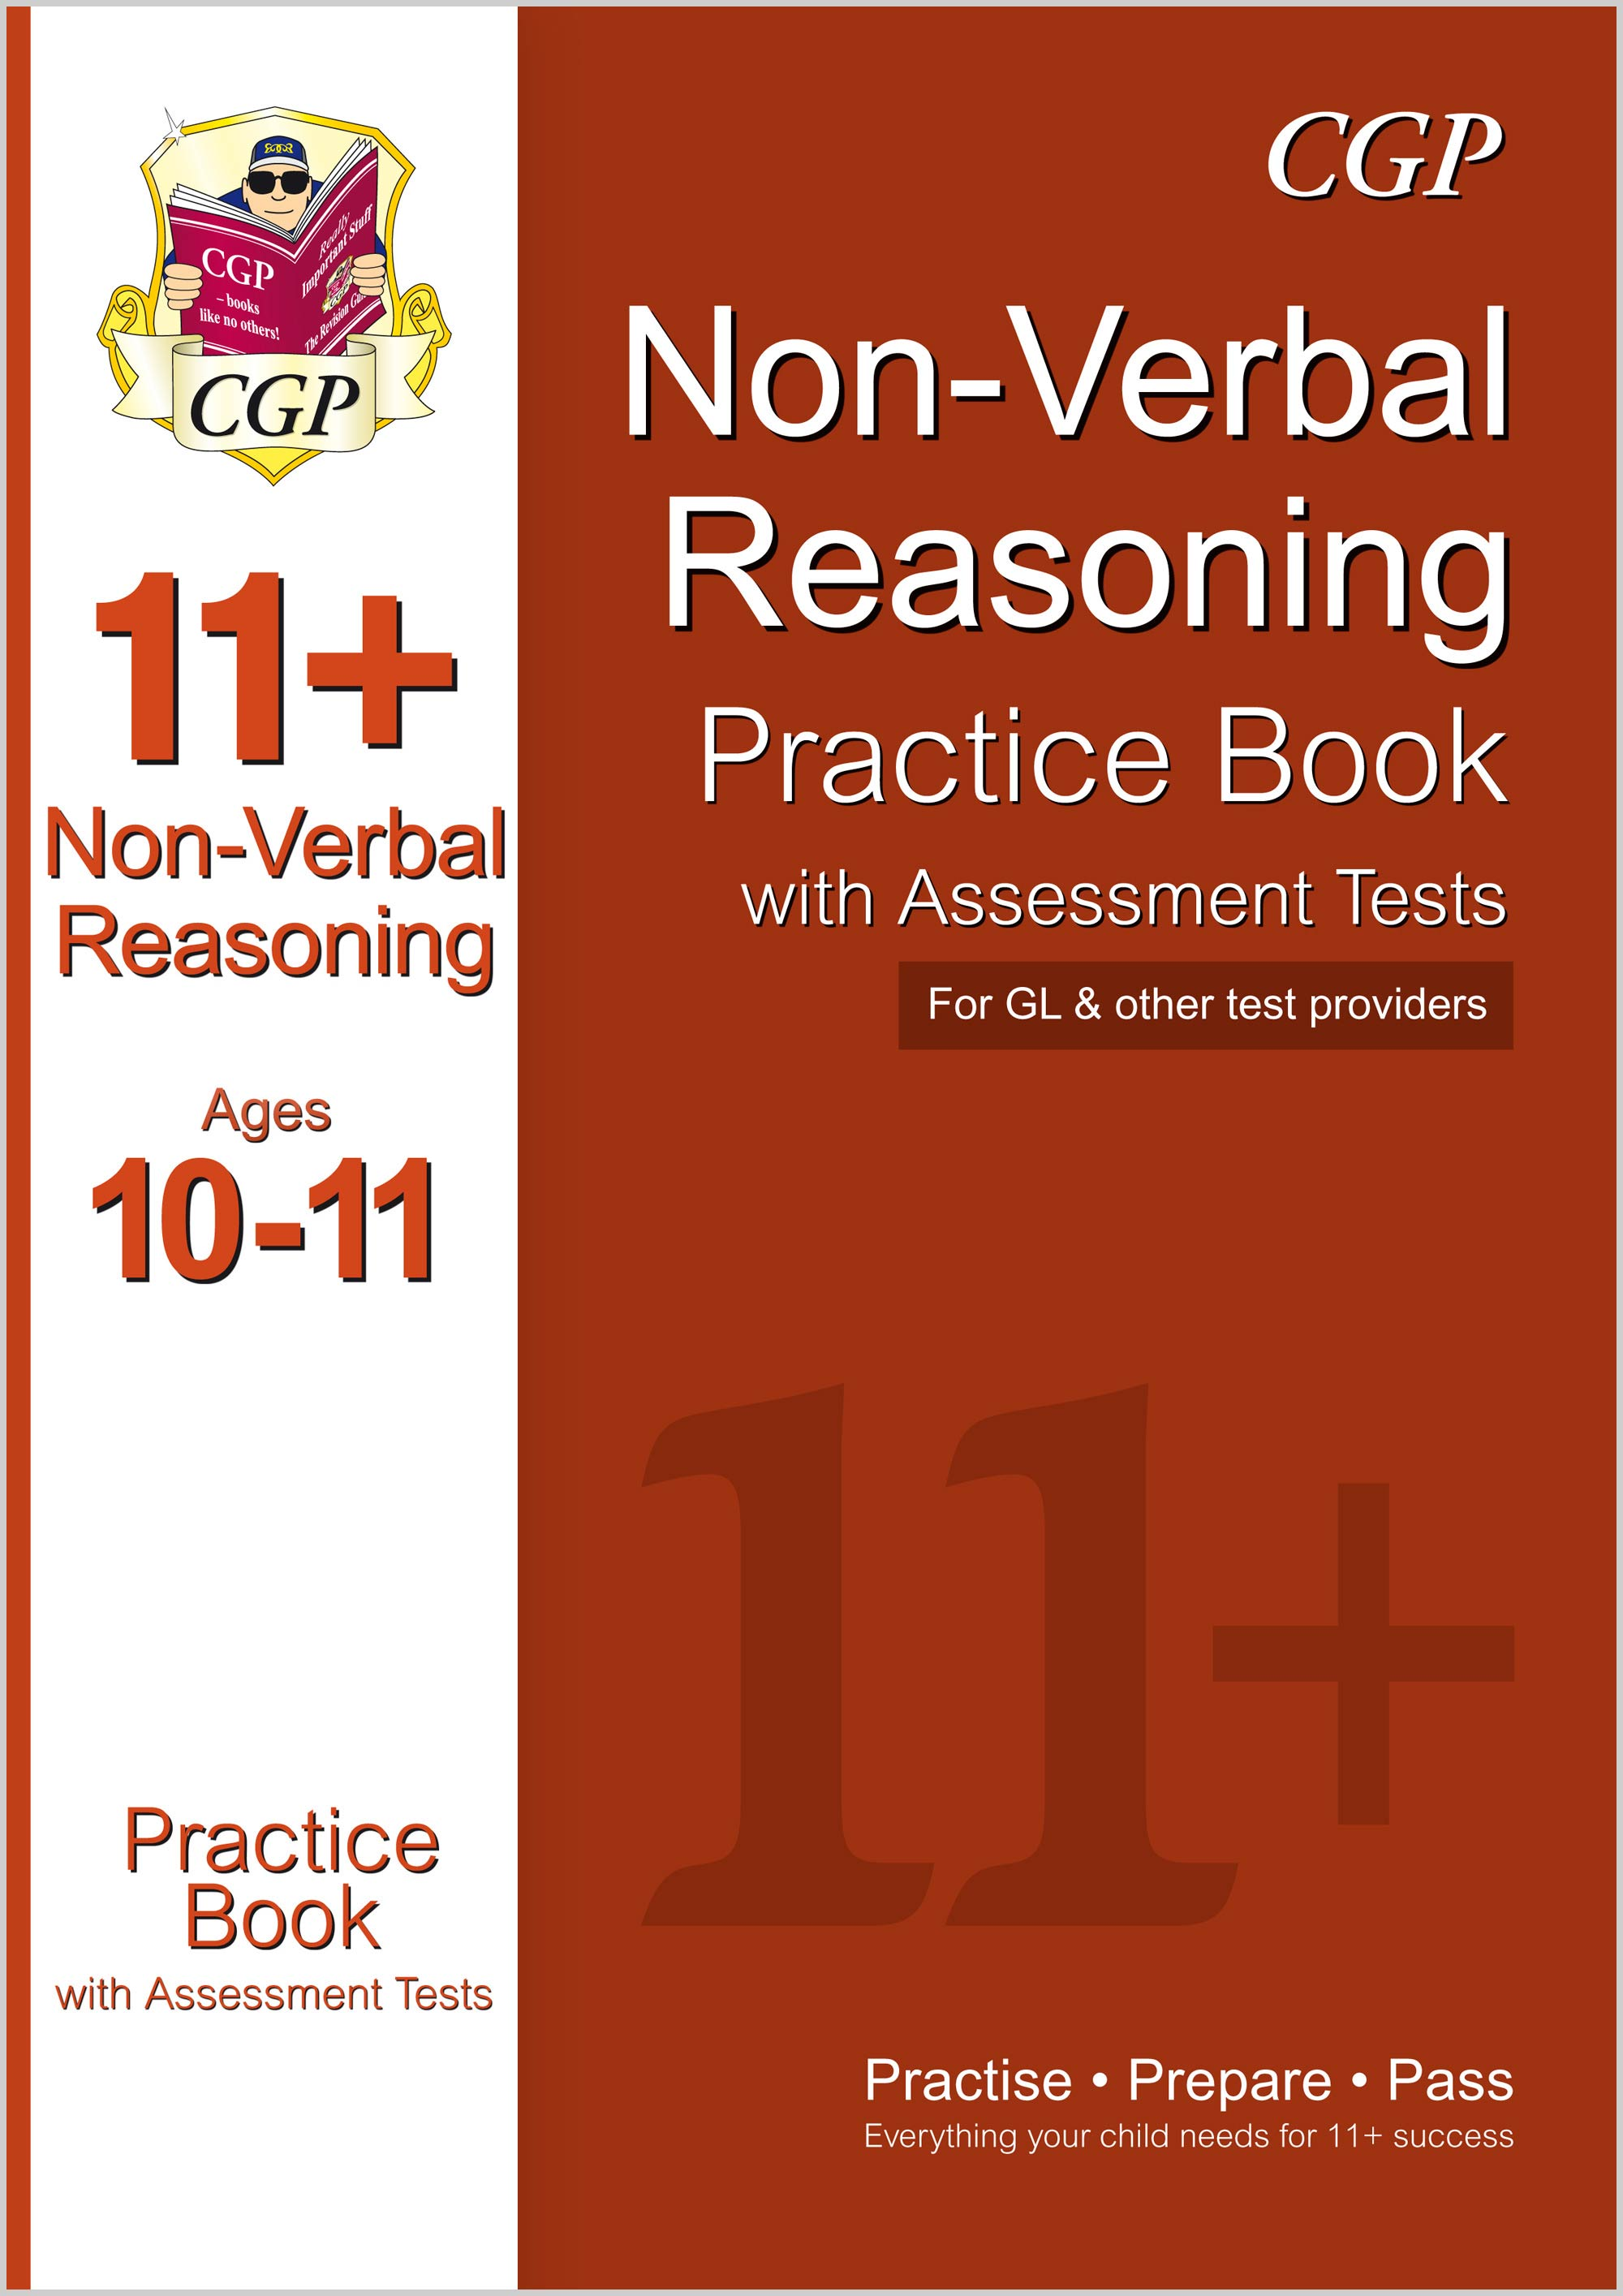 N6QE1 - 11+ Non-Verbal Reasoning Practice Book with Assessment Tests Ages 10-11 (GL & Other Test Pro